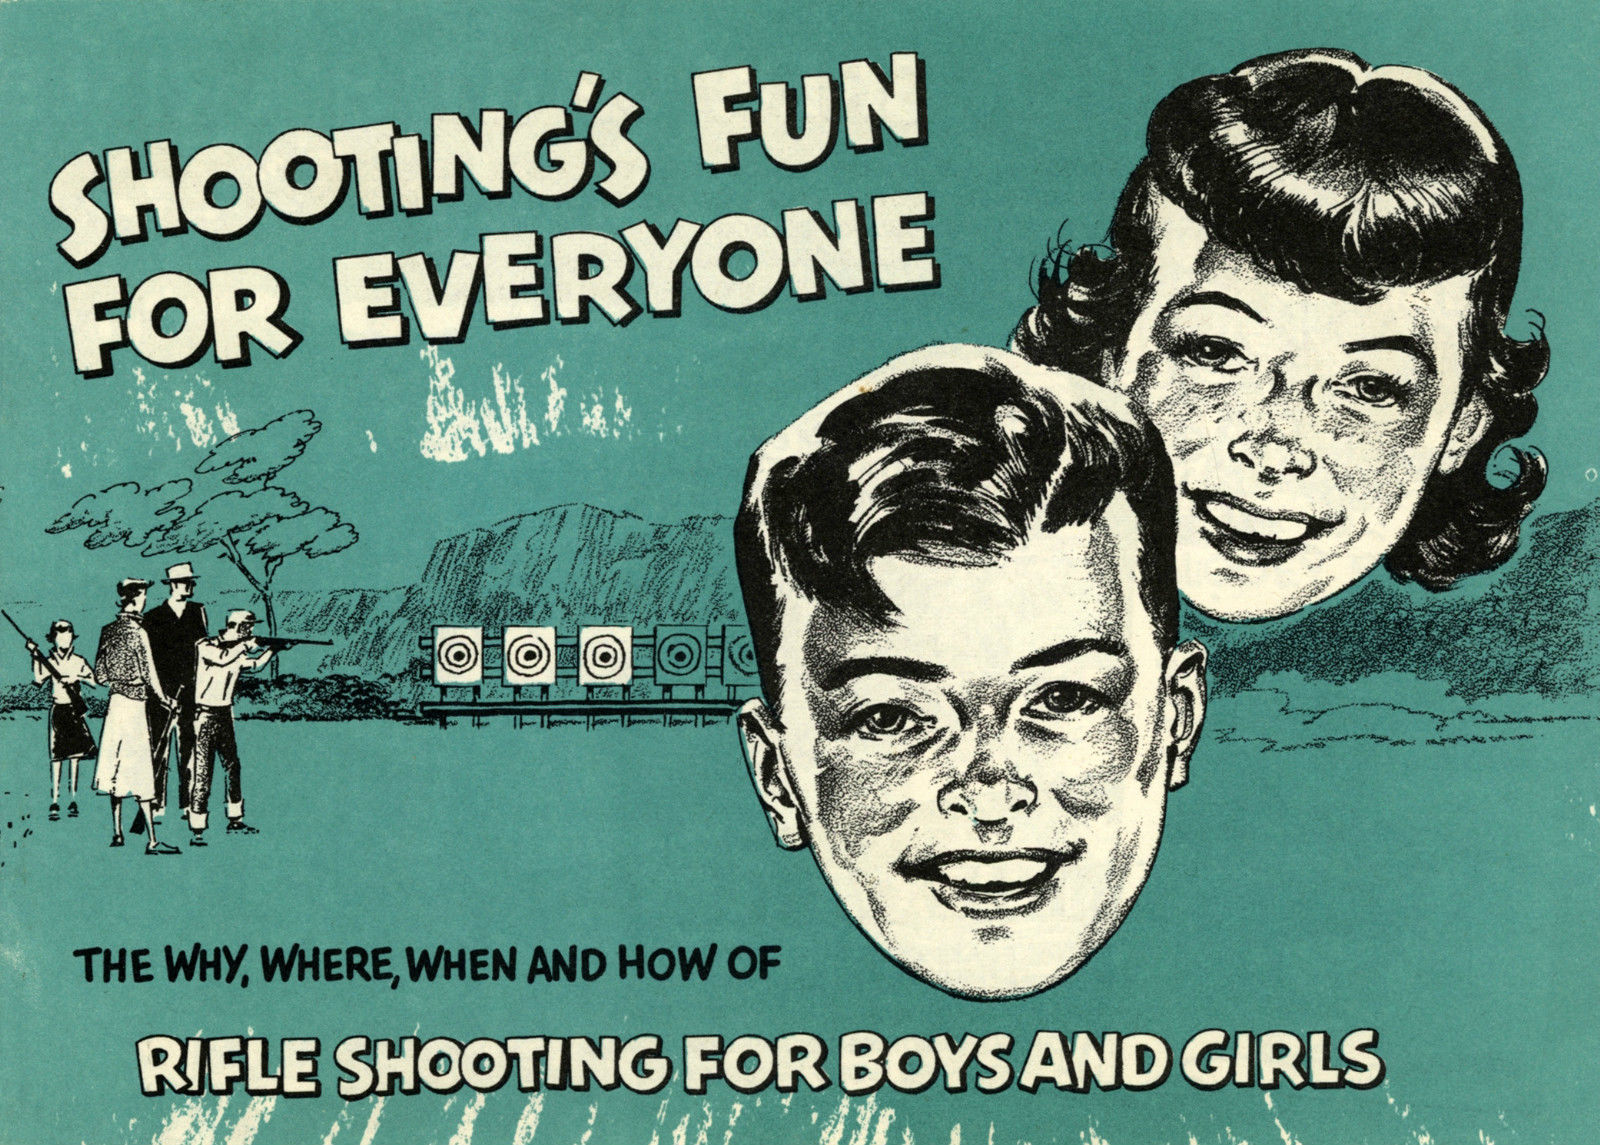 Shooting's Fun For Everyone